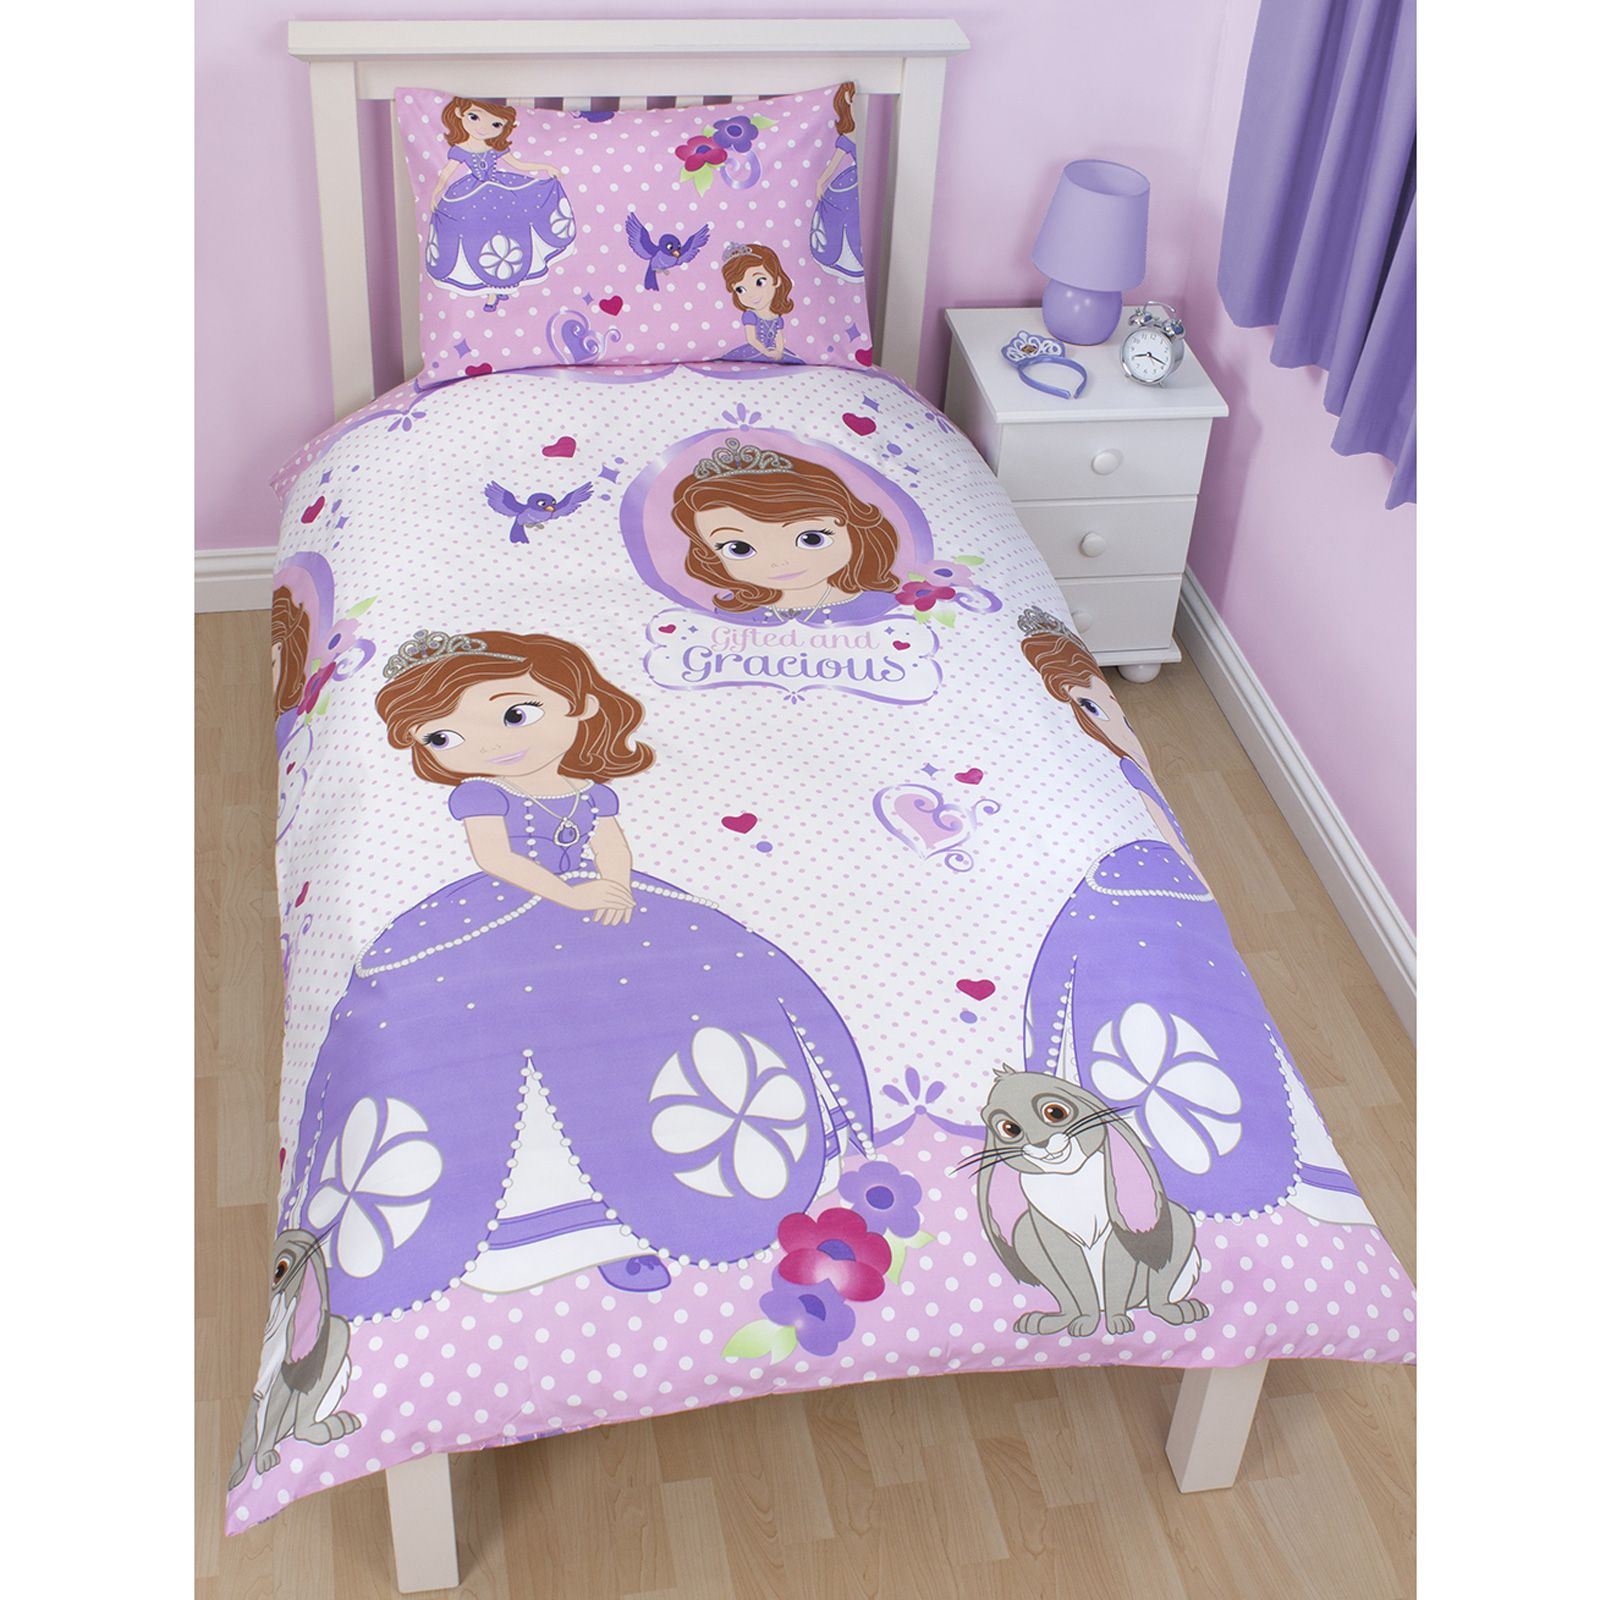 Kids disney character single duvet cover sets paw patrol - Sofia the first bedroom ...